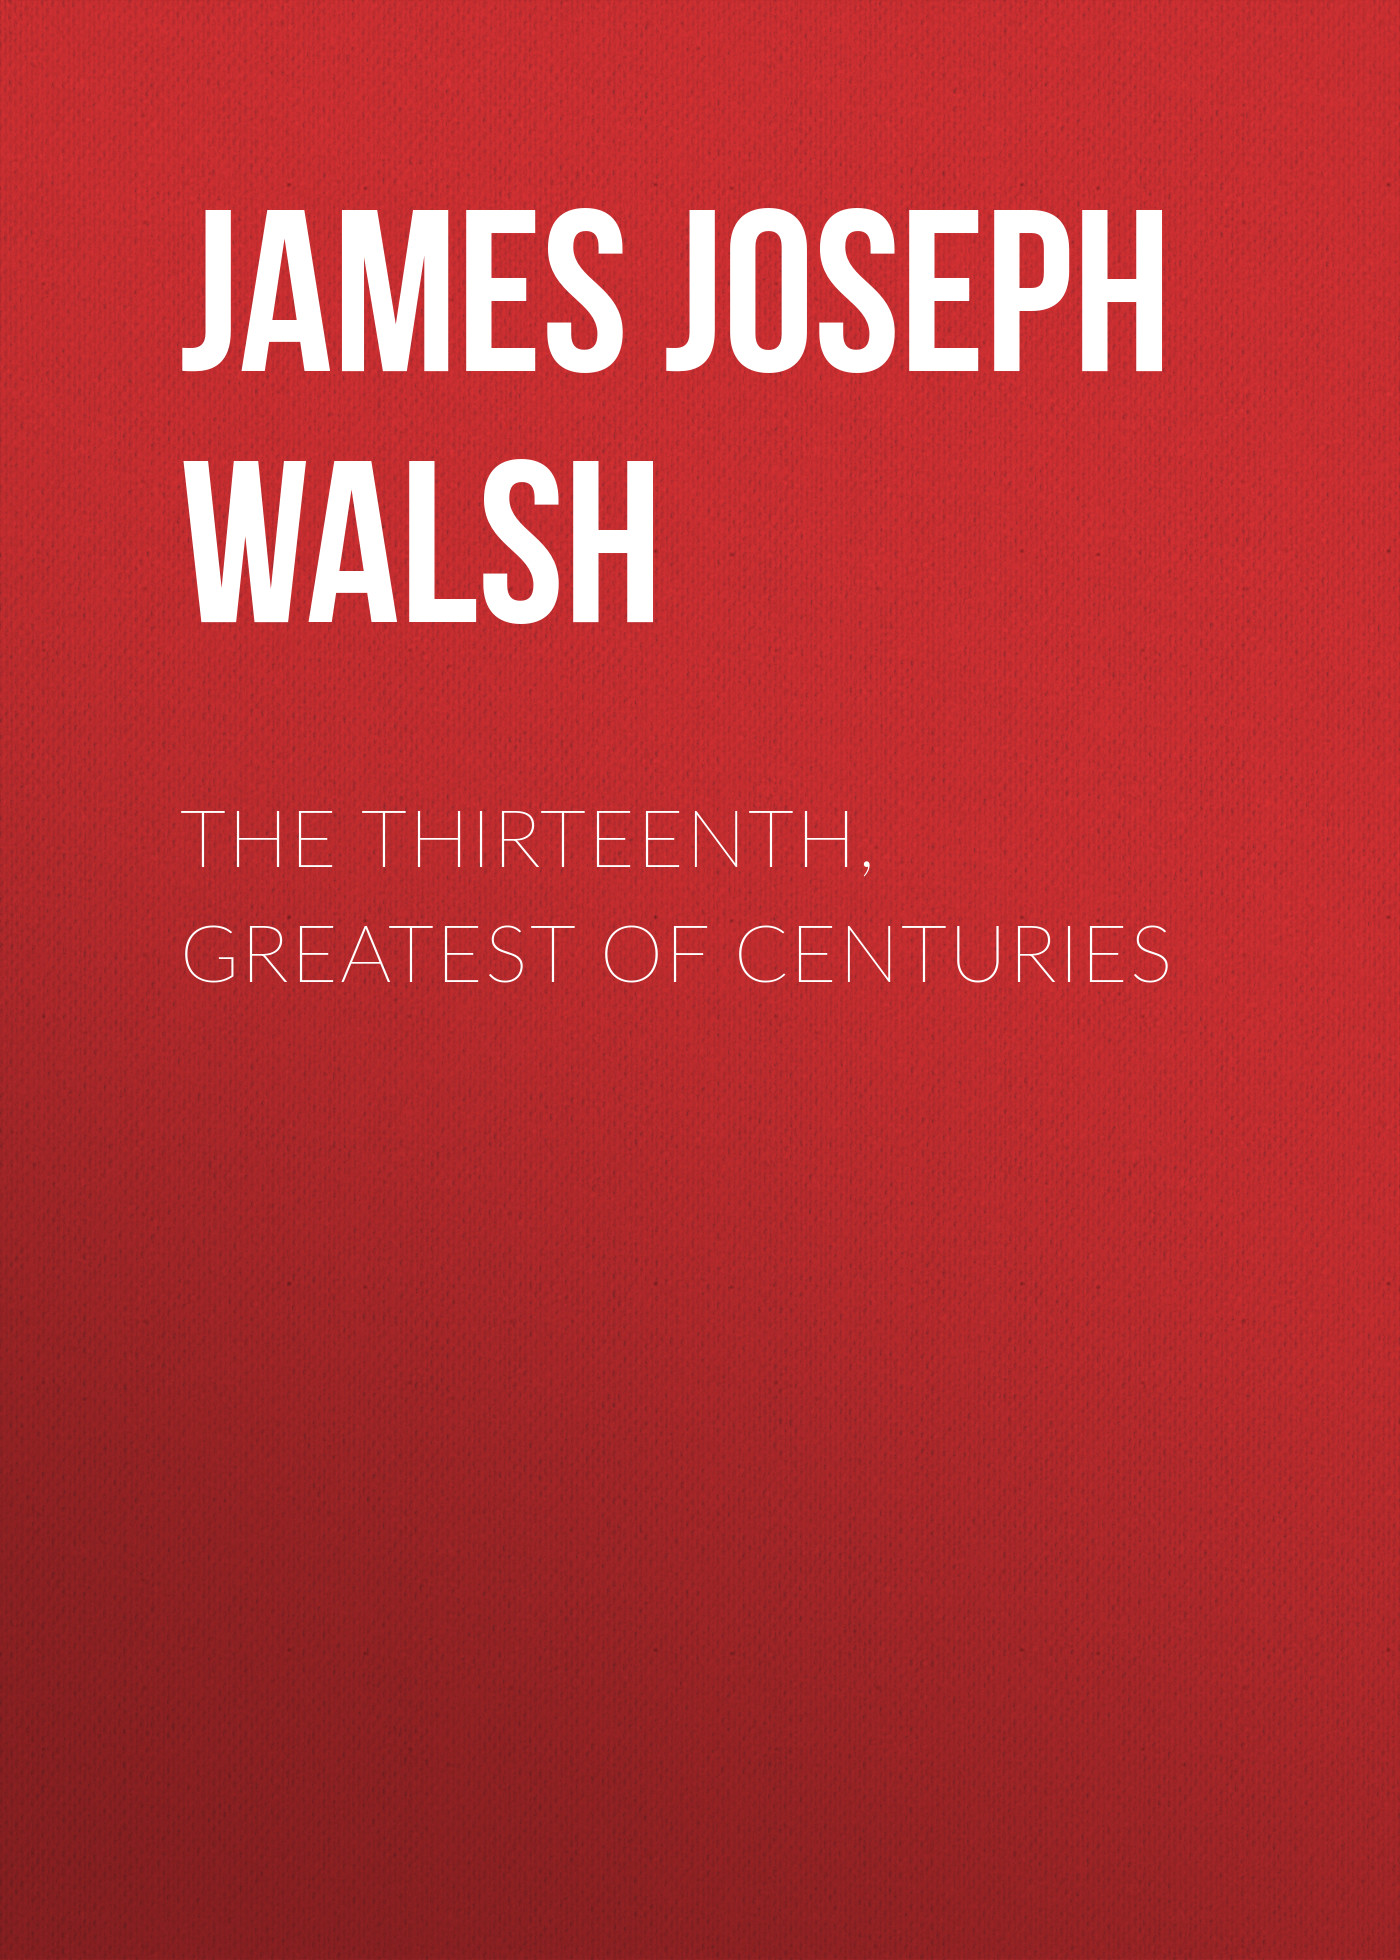 James Joseph Walsh The Thirteenth, Greatest of Centuries